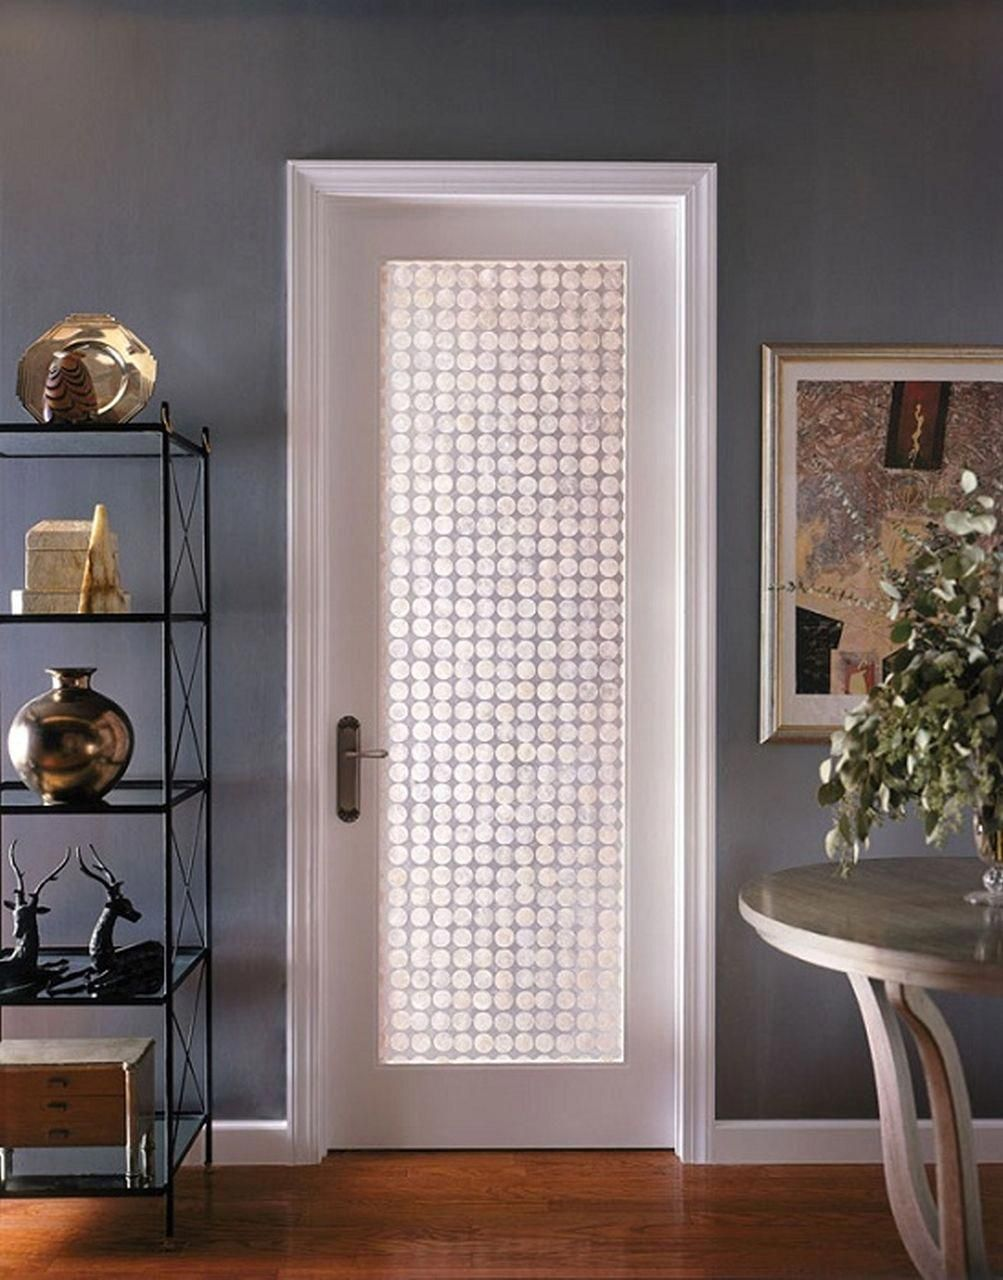 Decorative interior doors with glass interior glass doors photos interiorhalfdoor